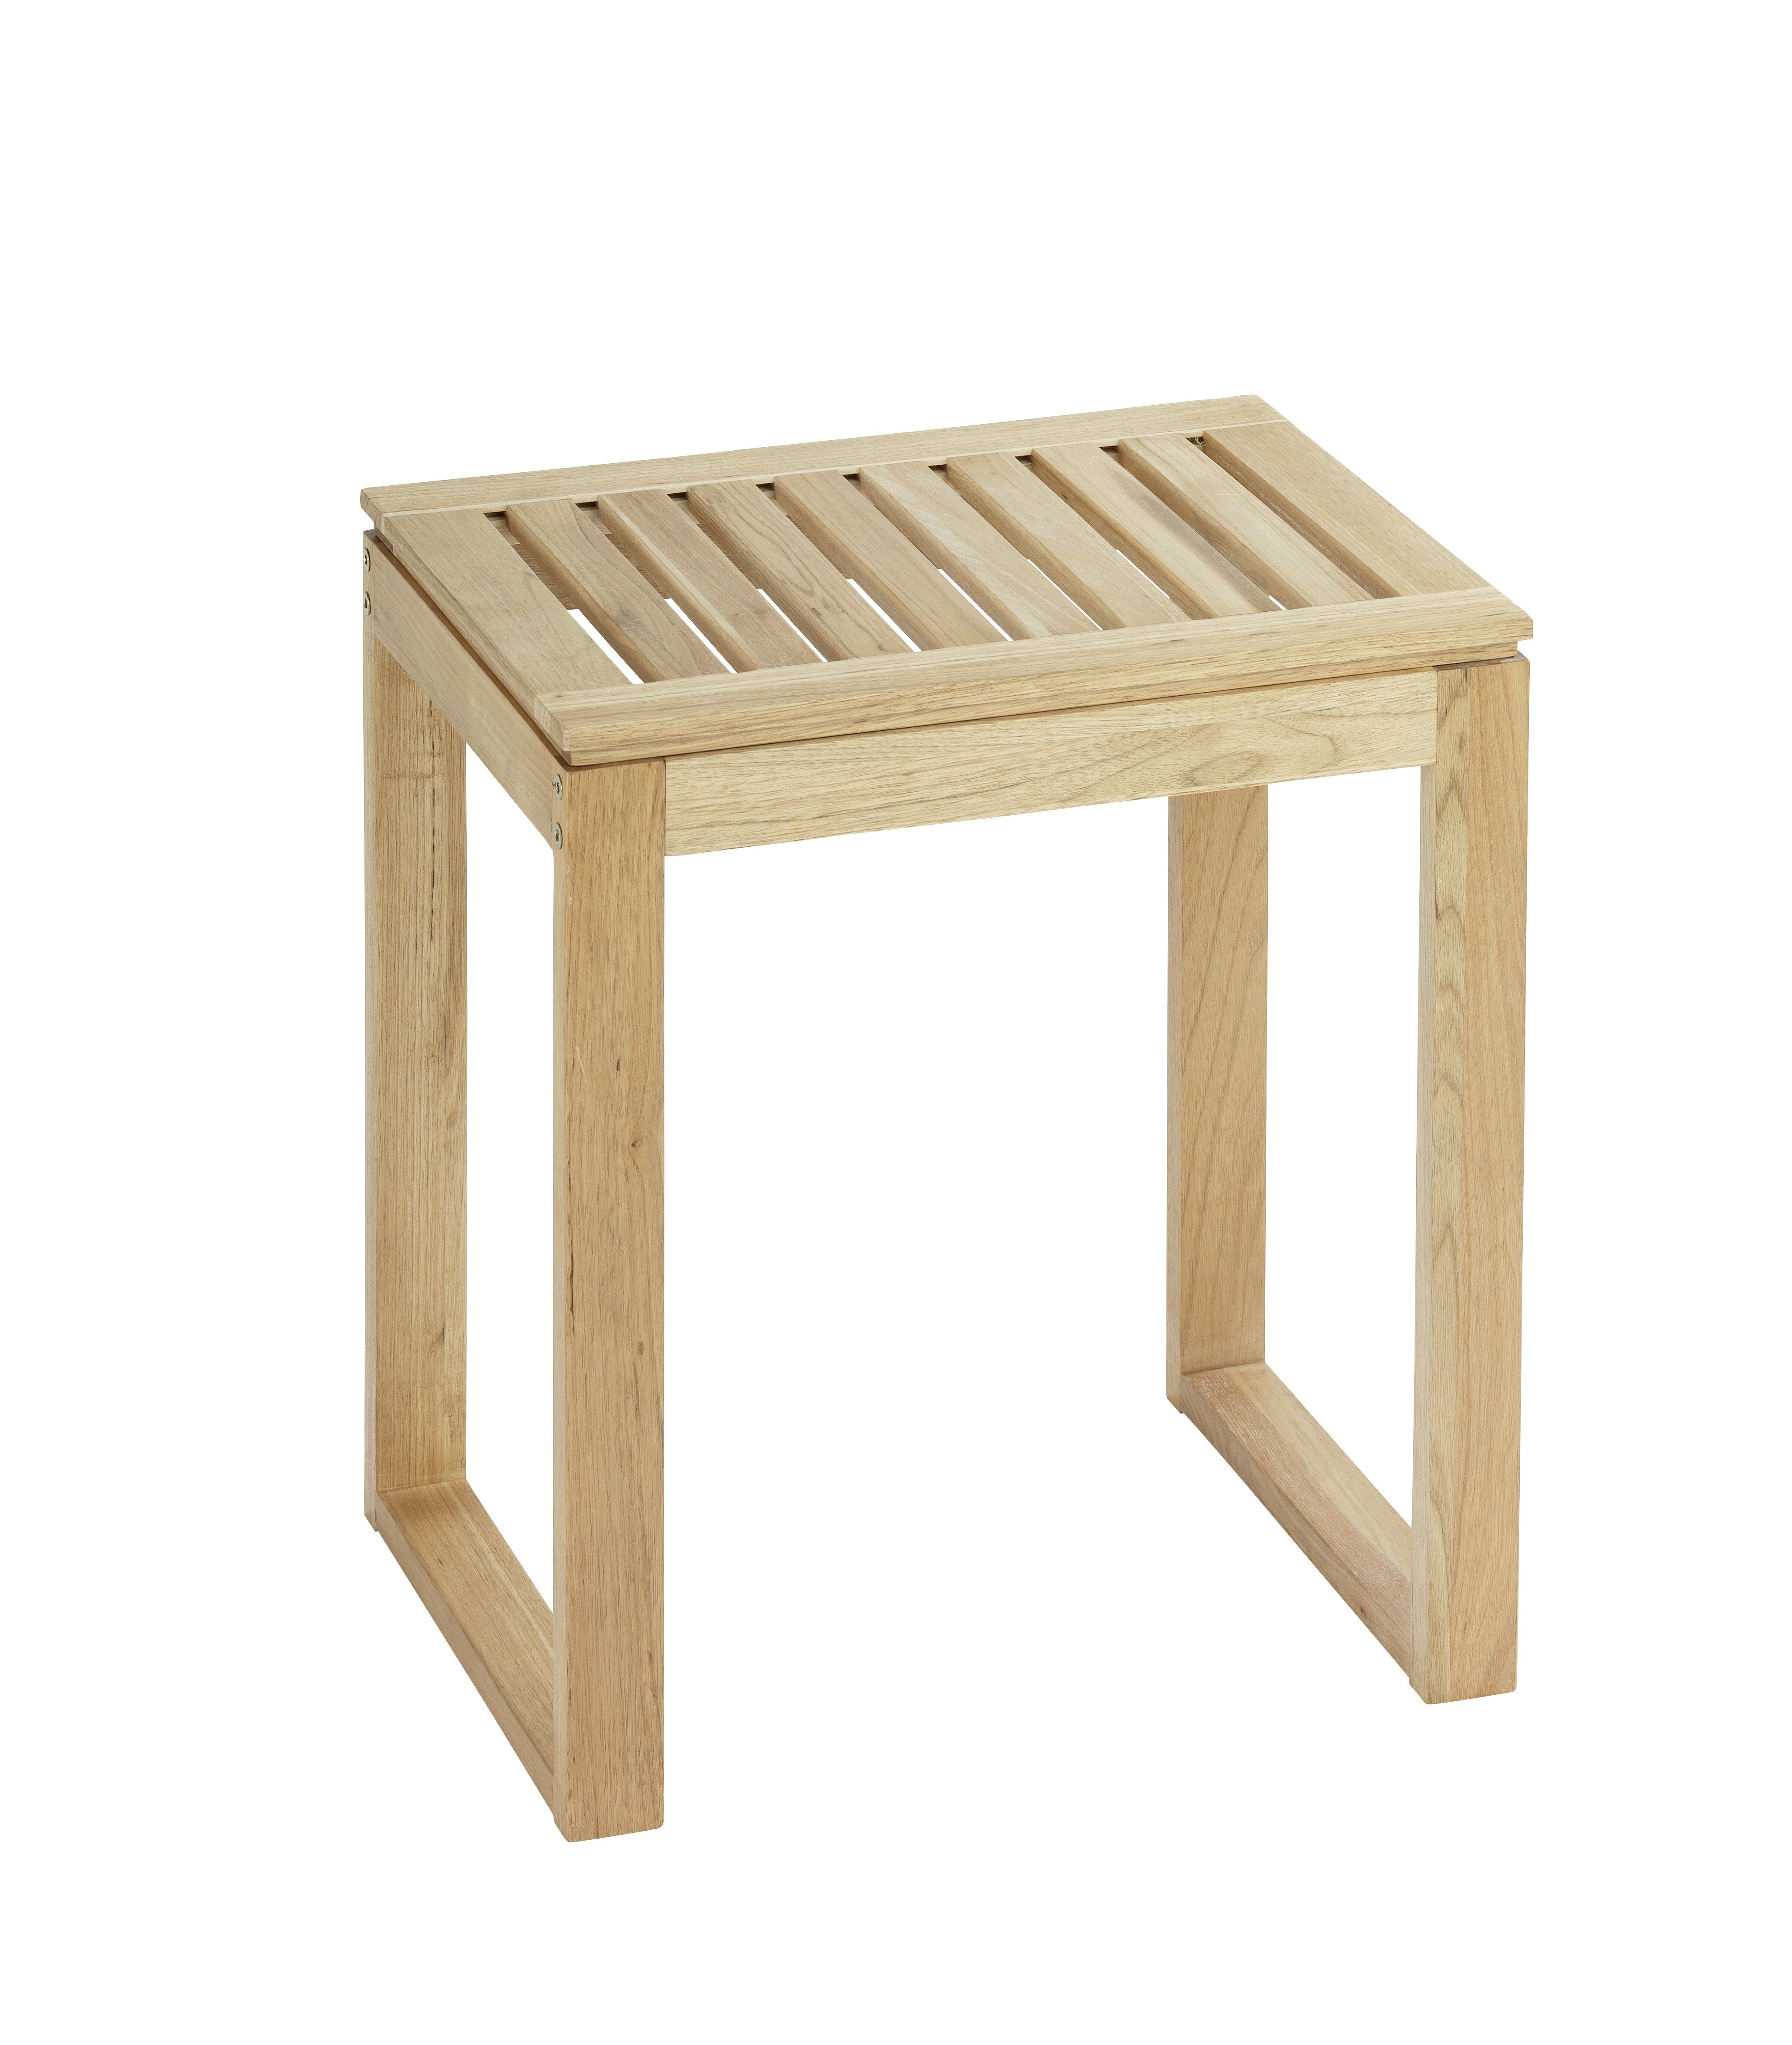 Wenko Norway Wood Free Standing Bathroom Stool Reviews Wayfair Co Uk